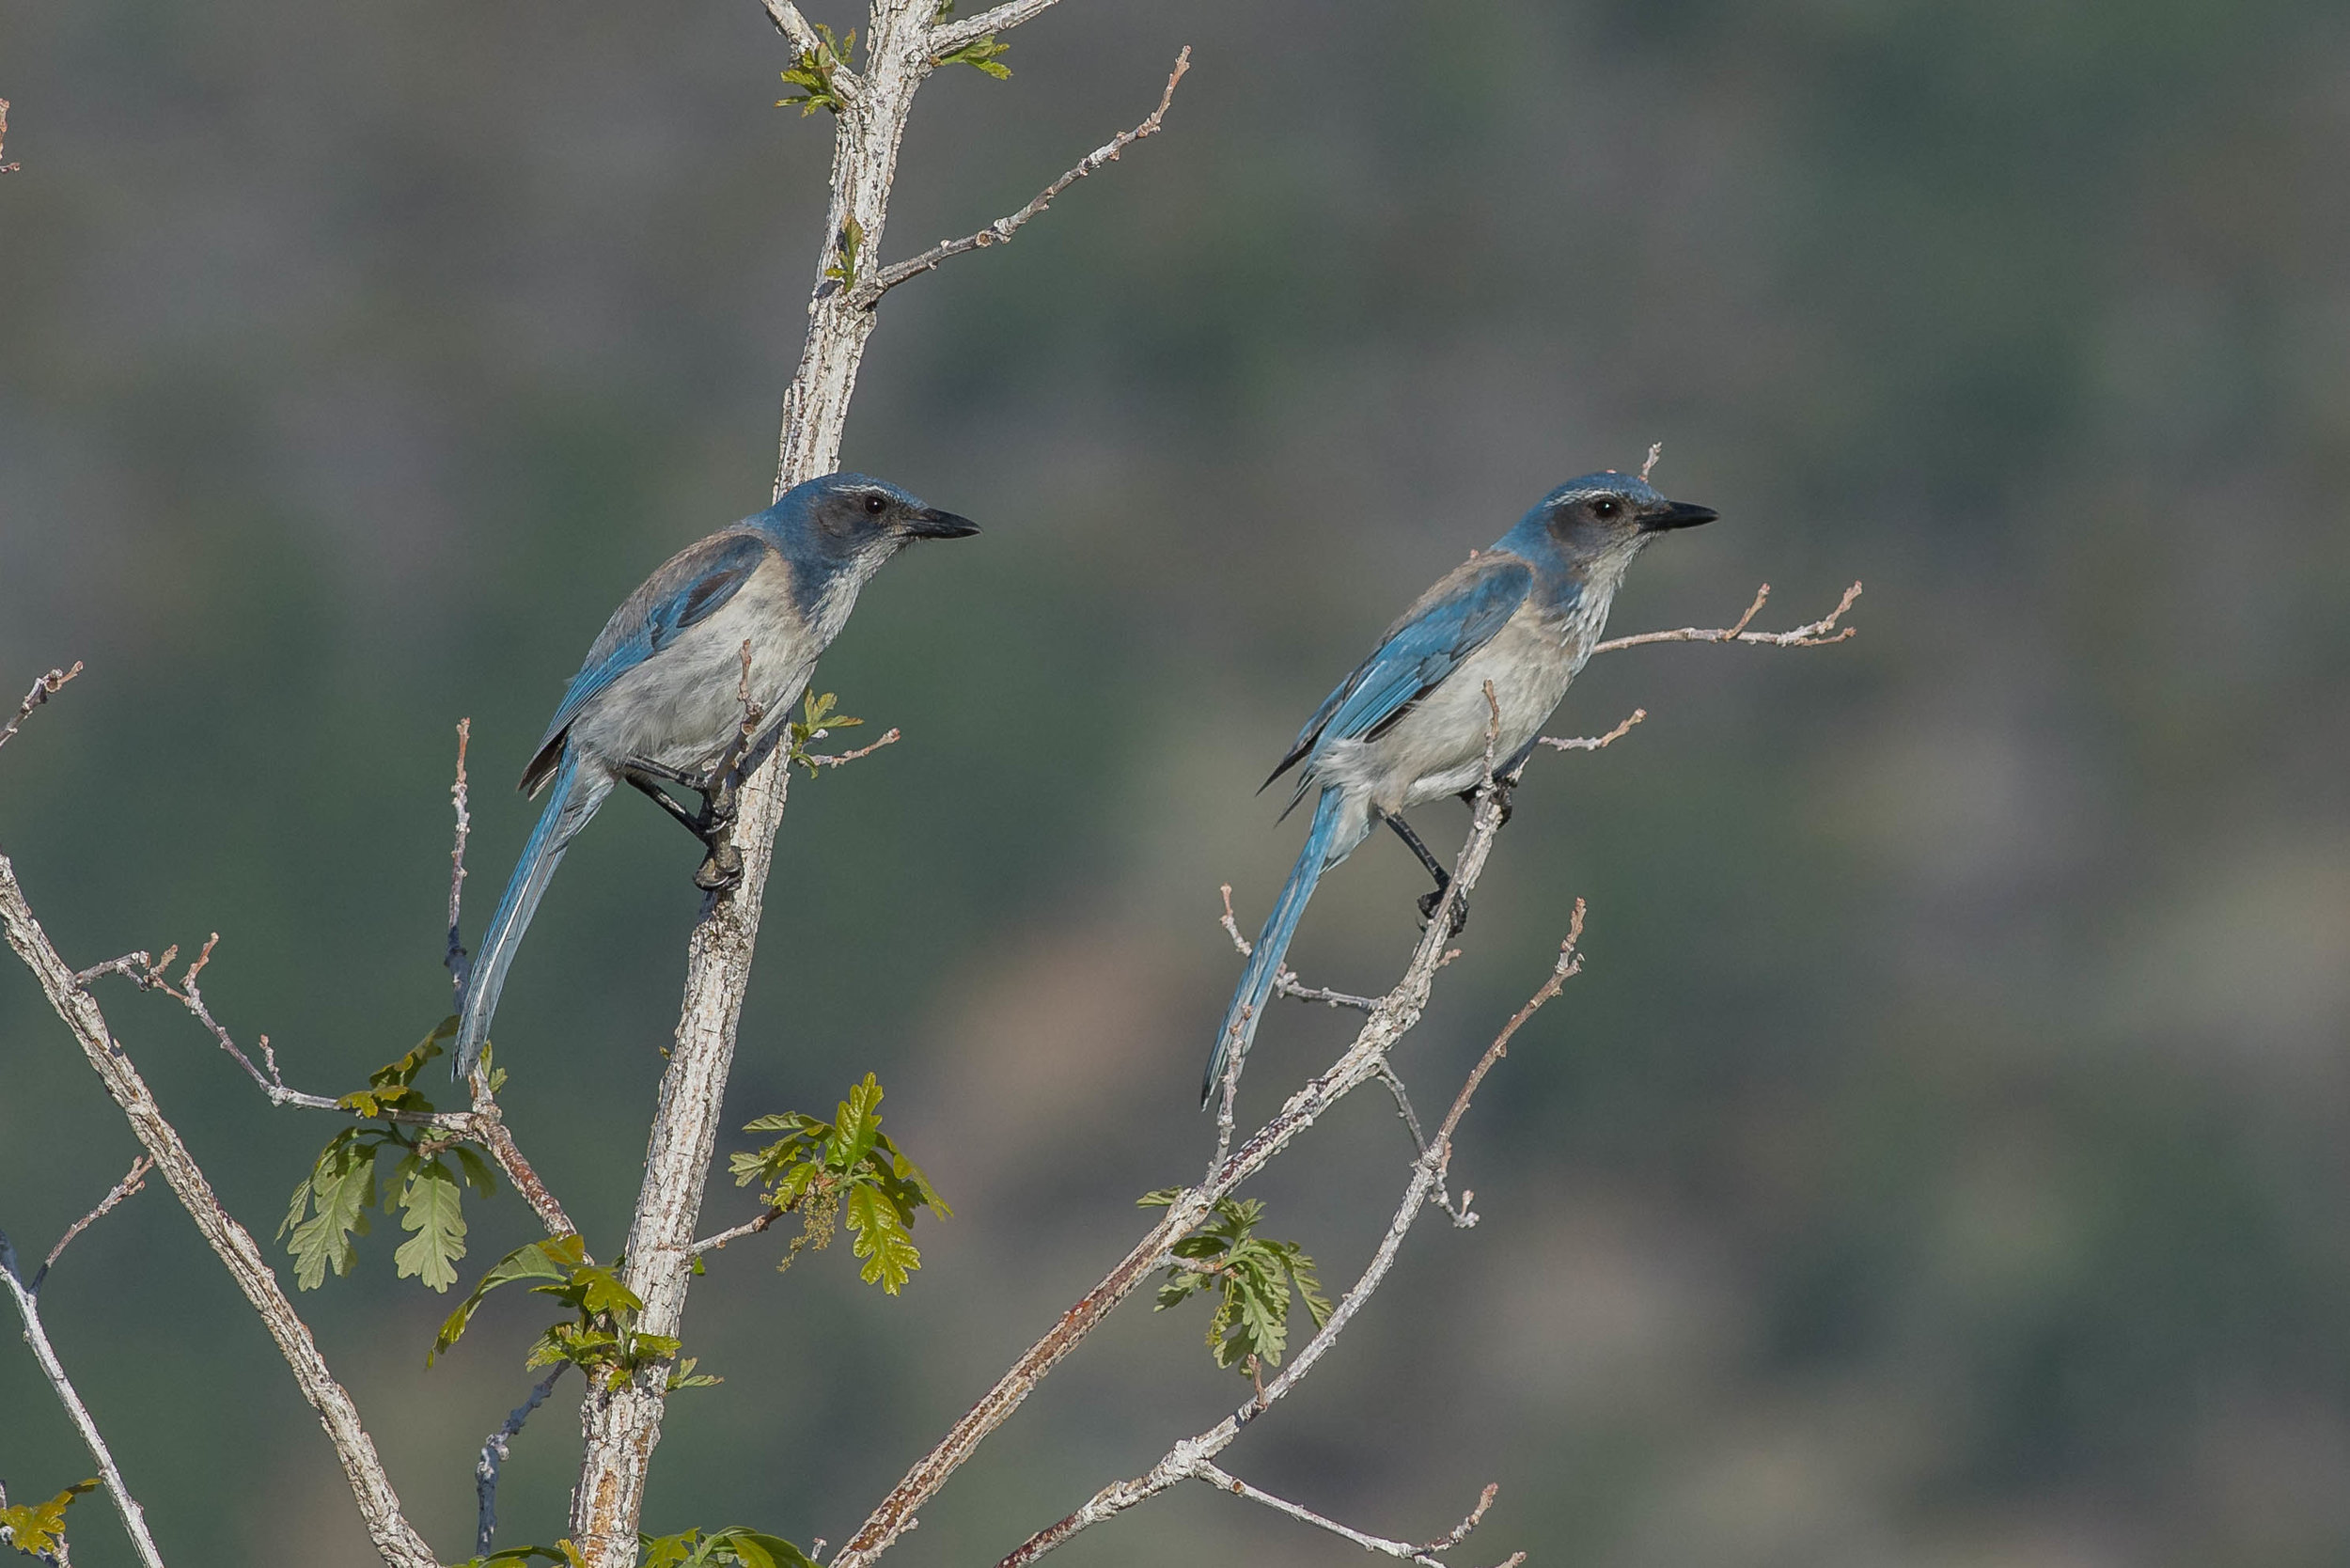 California Scrub-Jay (Aphelocoma californica) in Burr Oak  EQ: D7200, 300mm f/2.8 Taken: 7-27-2018 at 7:02  Settings: 450mm (35mm eqv), 1/1250s, f/5.6, ISO250, 1/3EV Conditions: clear sunrise